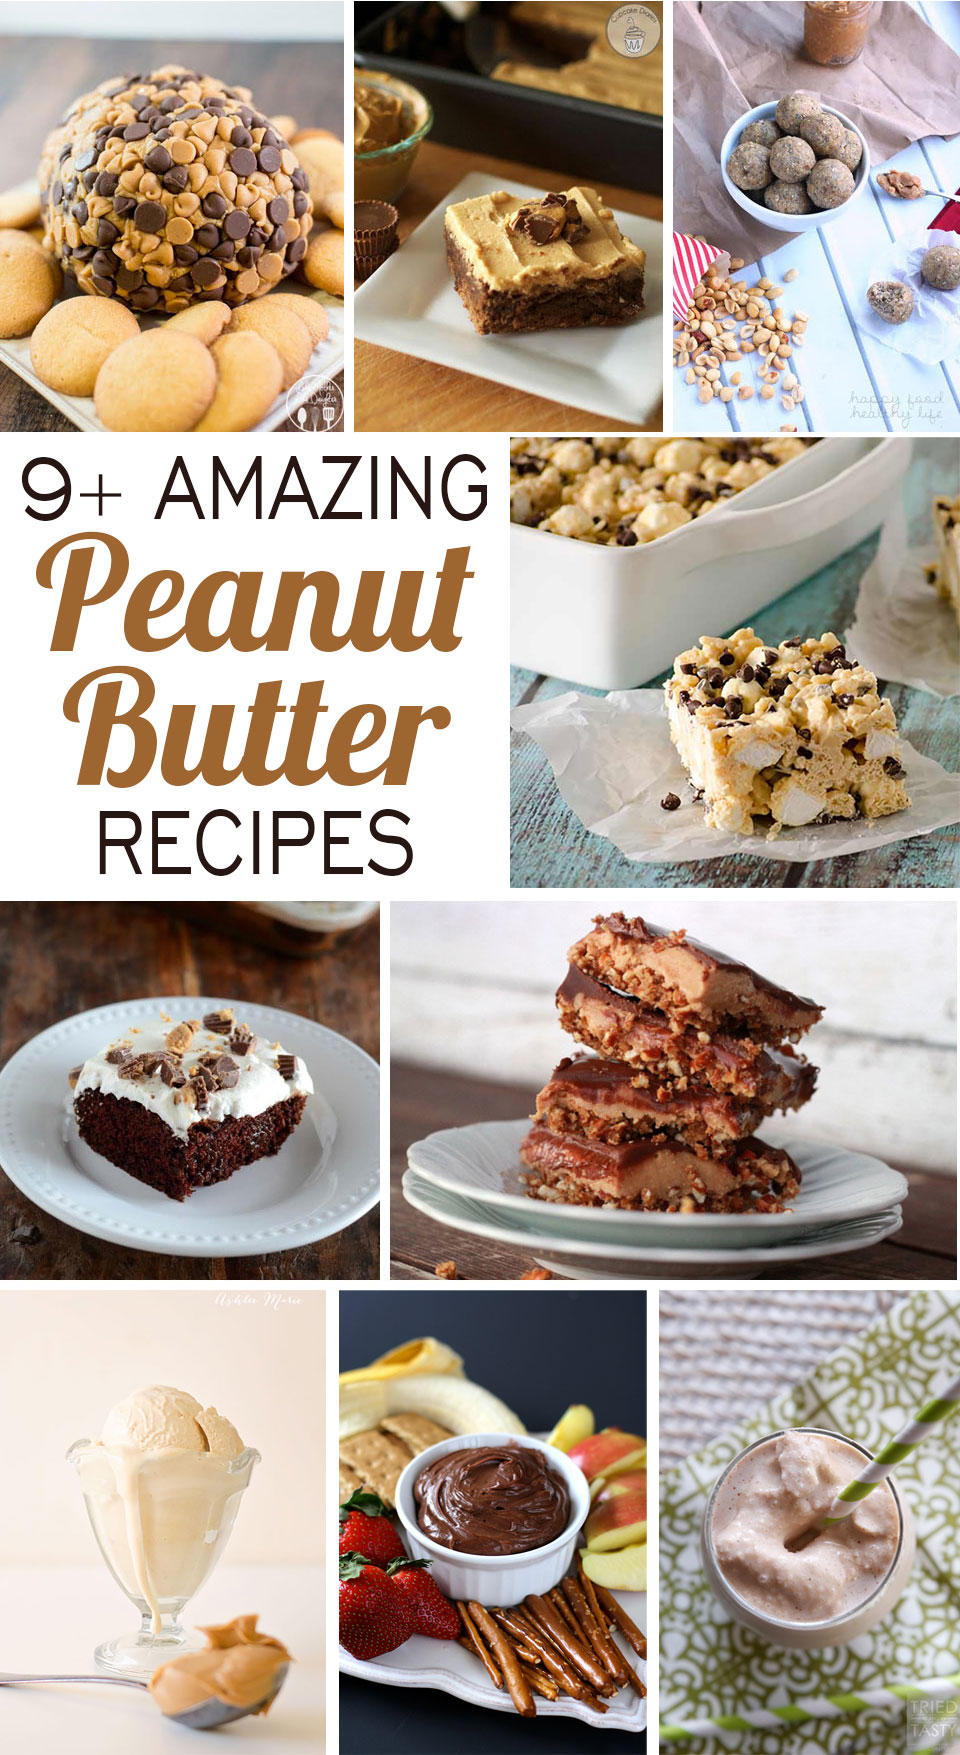 nine amazing peanut butter recipes, perfect for national peanut butter day